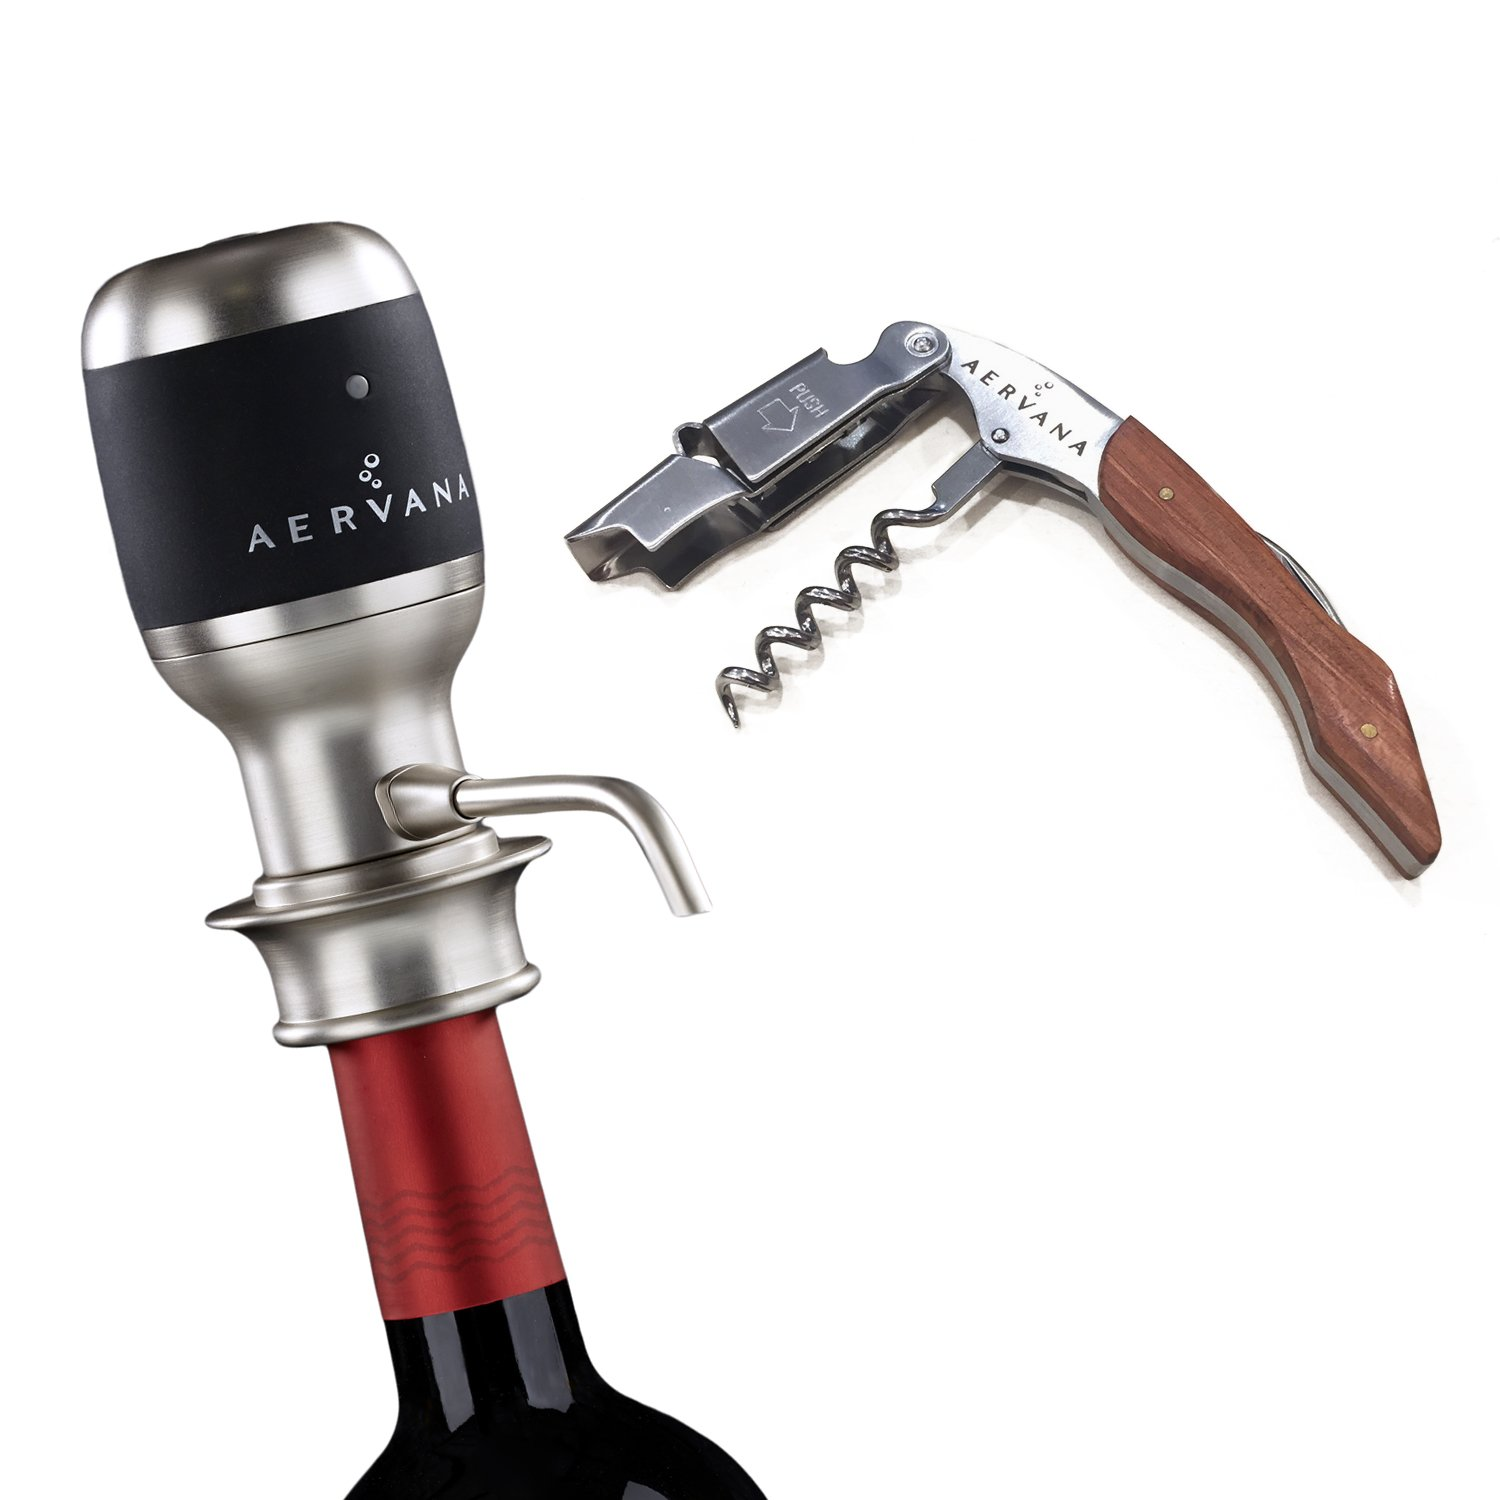 Bundle - 2 items: Aervana Original: Wine Aerator and Aervana Branded Waiter's Corkscrew by Aervana